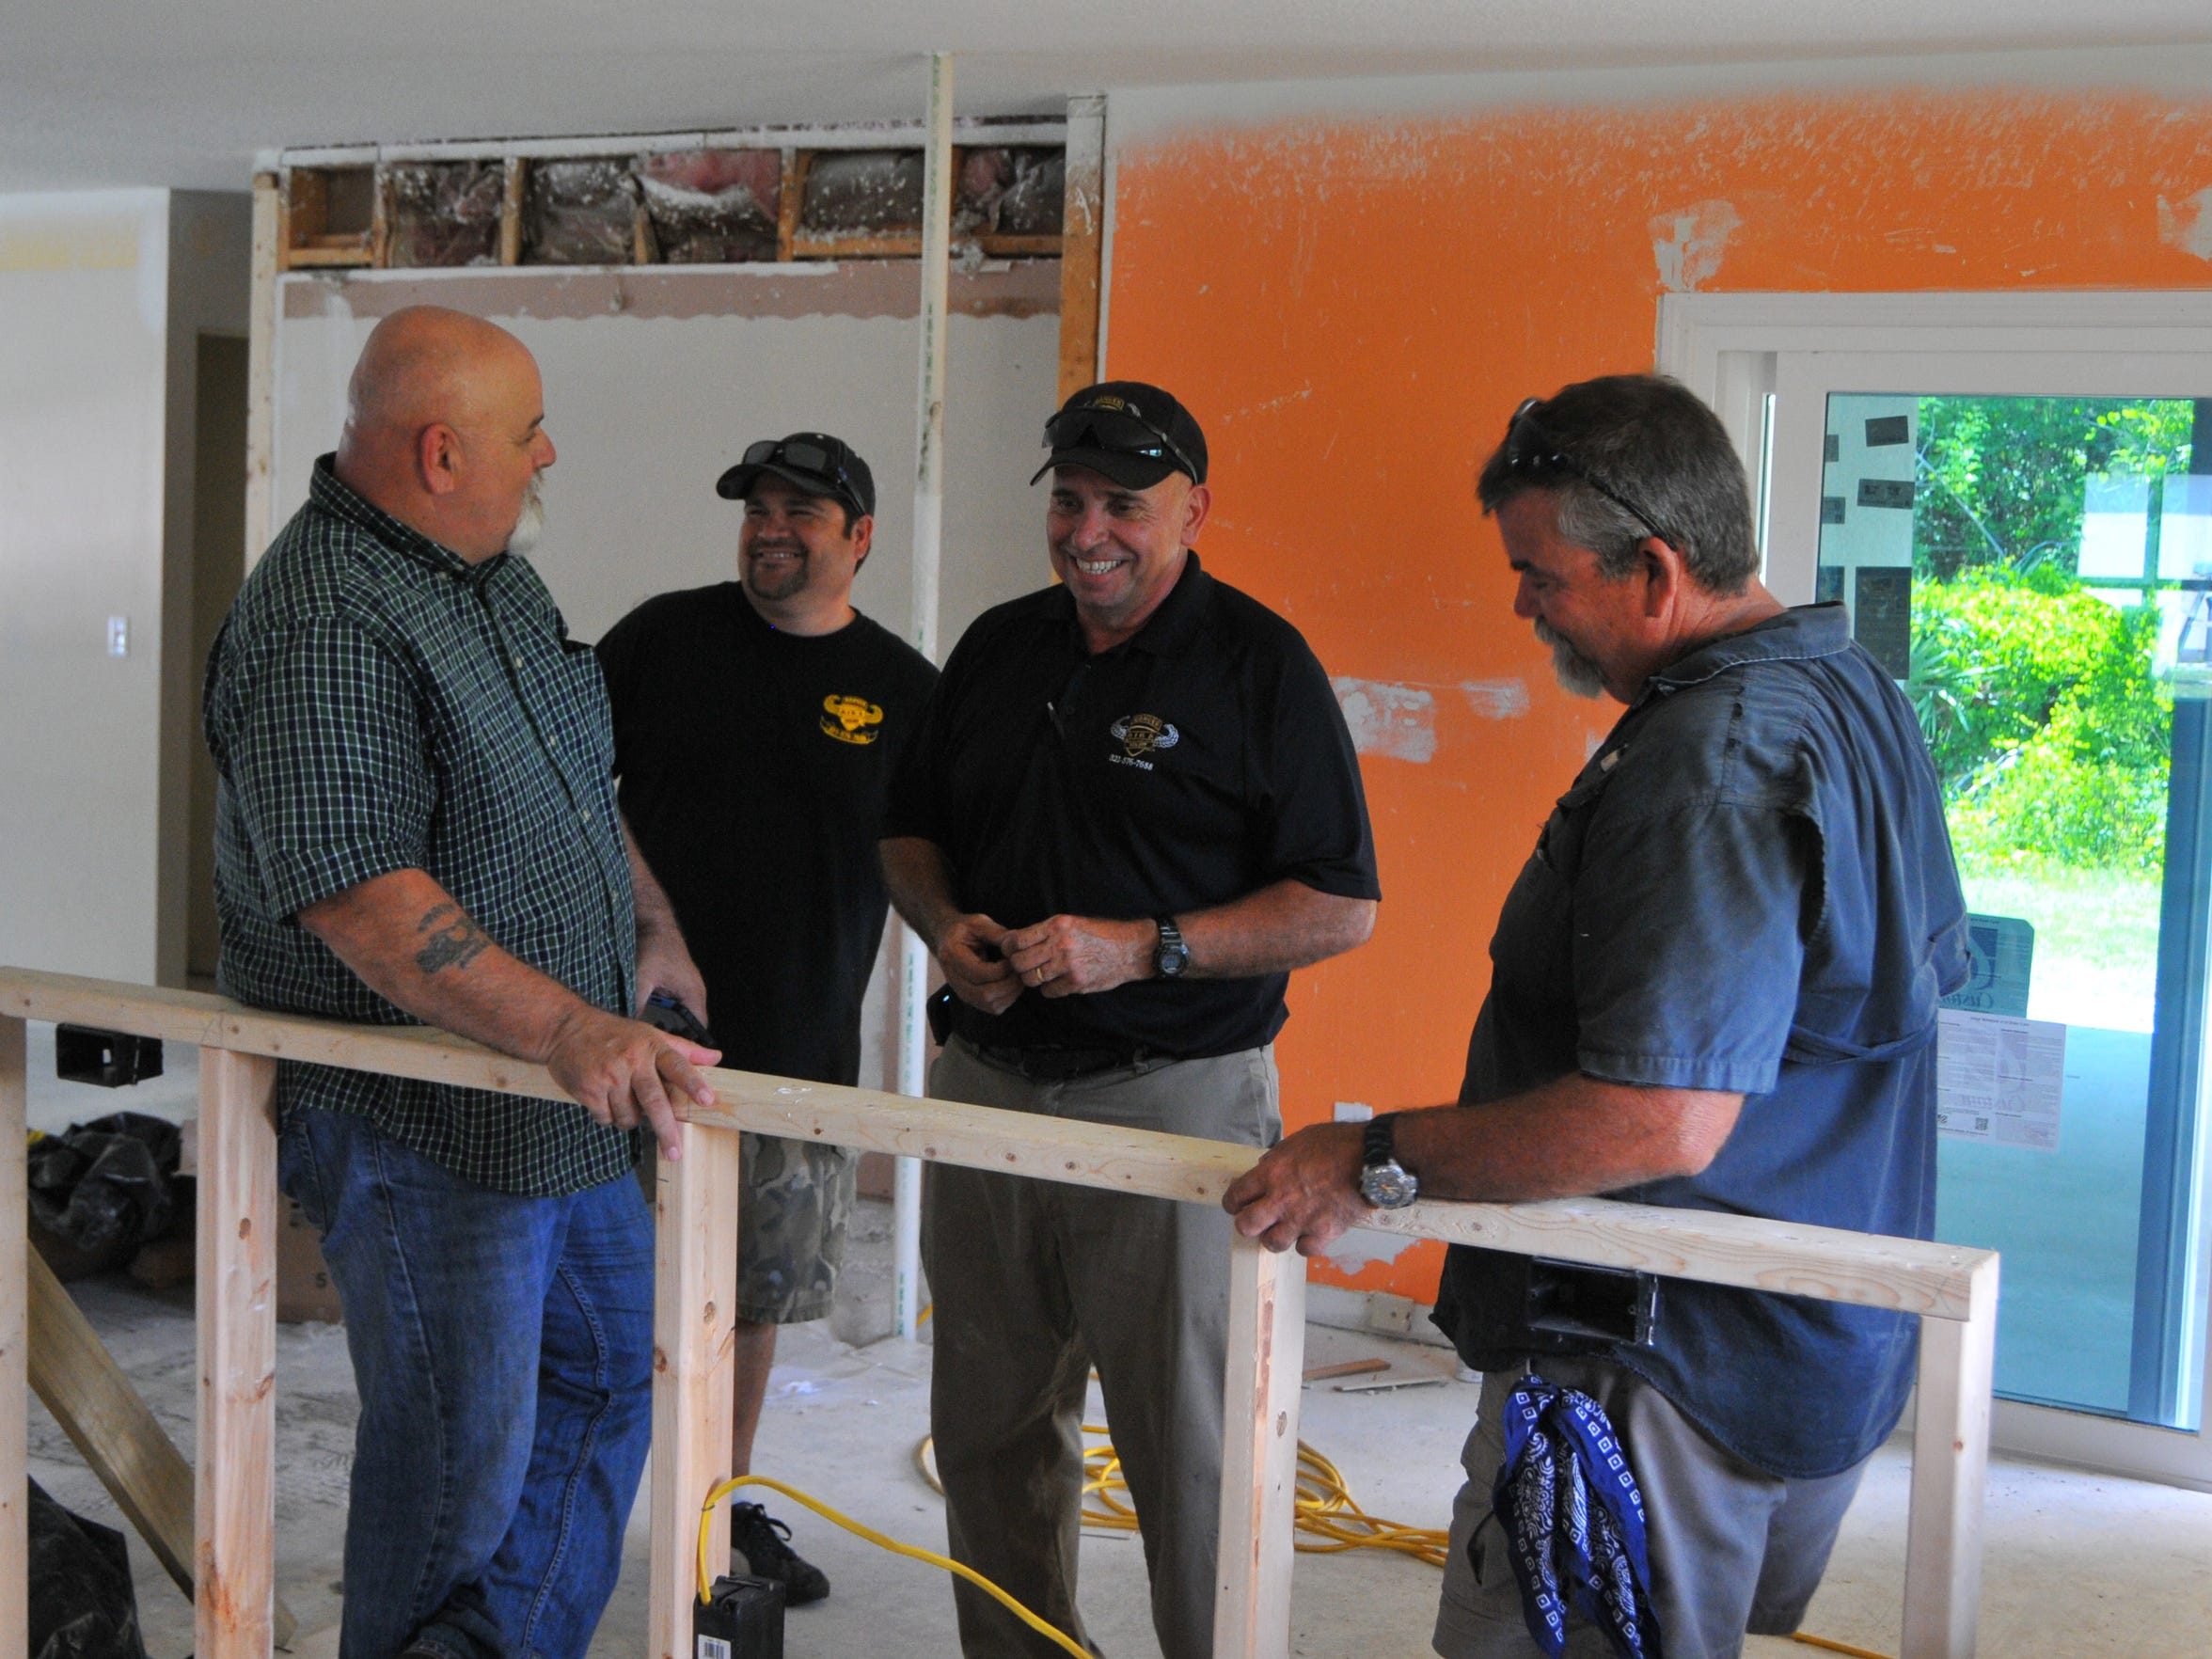 David Isnardi, with the Space Coast Paratroopers Association, talks with Marc Marttinez and Jerry Lawson with Ranger Air and Heat, and Bob Williams with the city of Palm Bay at house being refurbished for a wounded veteran.